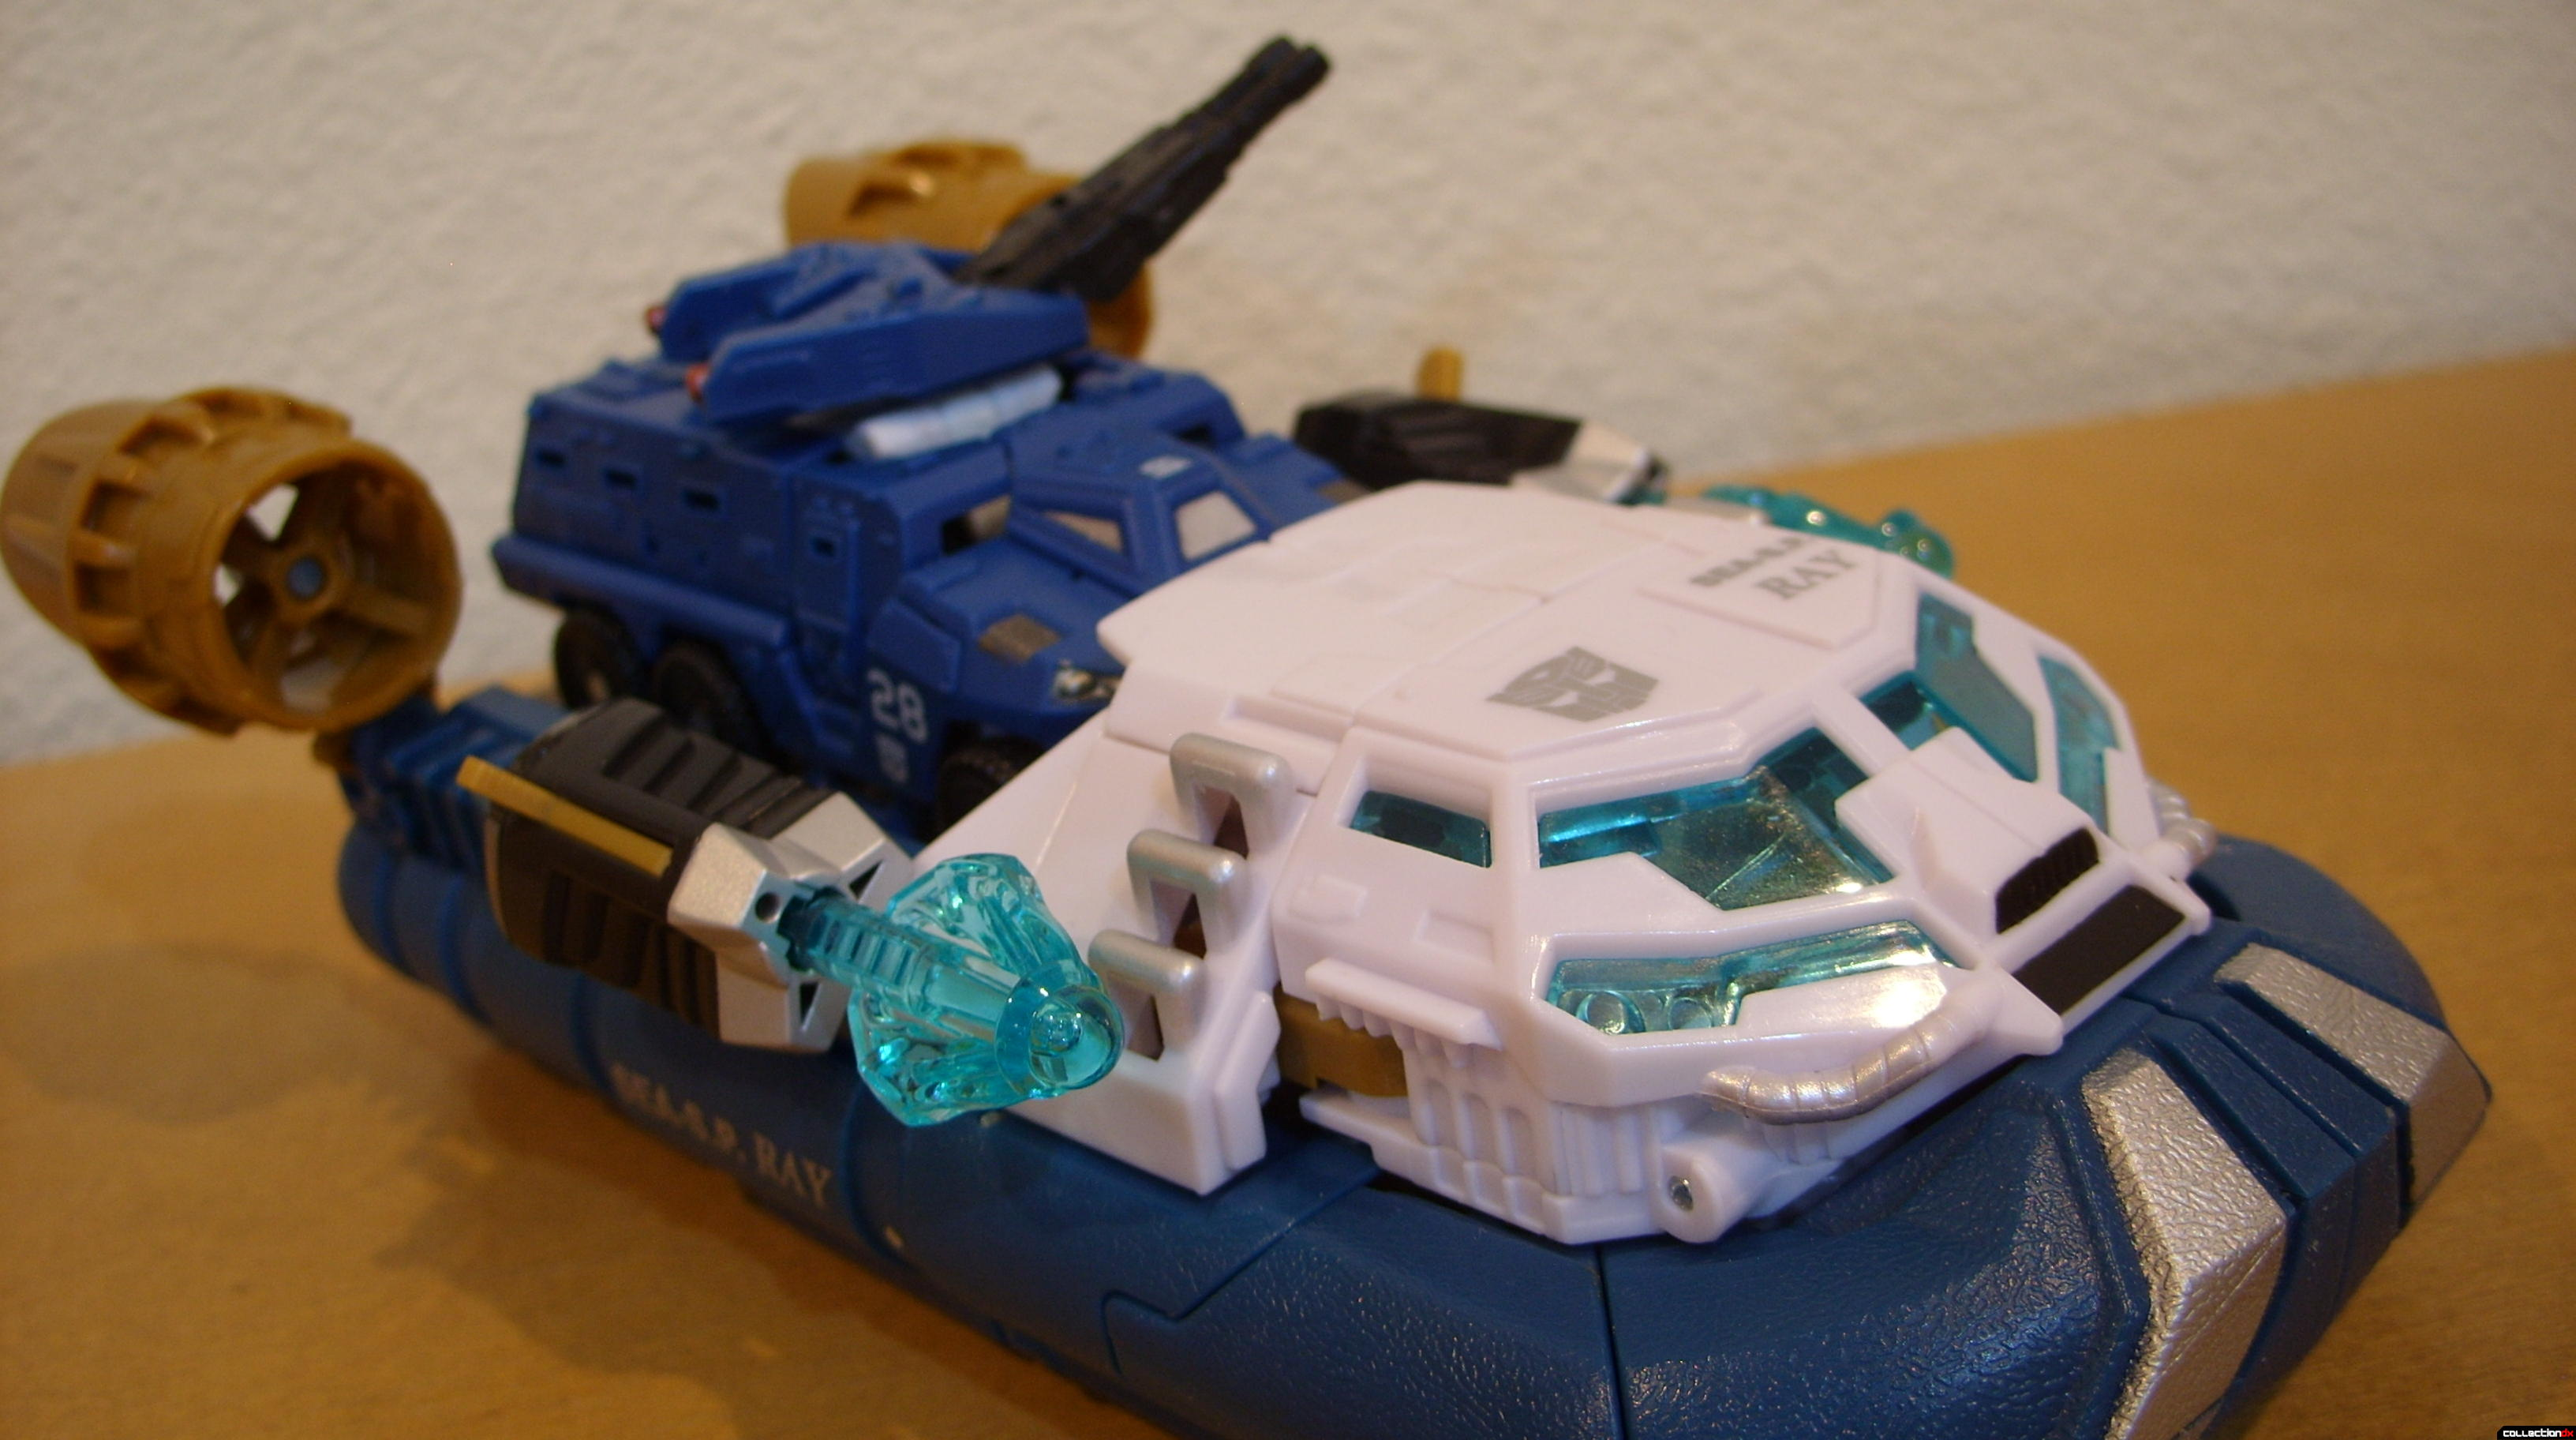 Voyager-class Autobot Sea Spray- vehicle mode dramatic angle (with Scout-class Autobot Breacher)